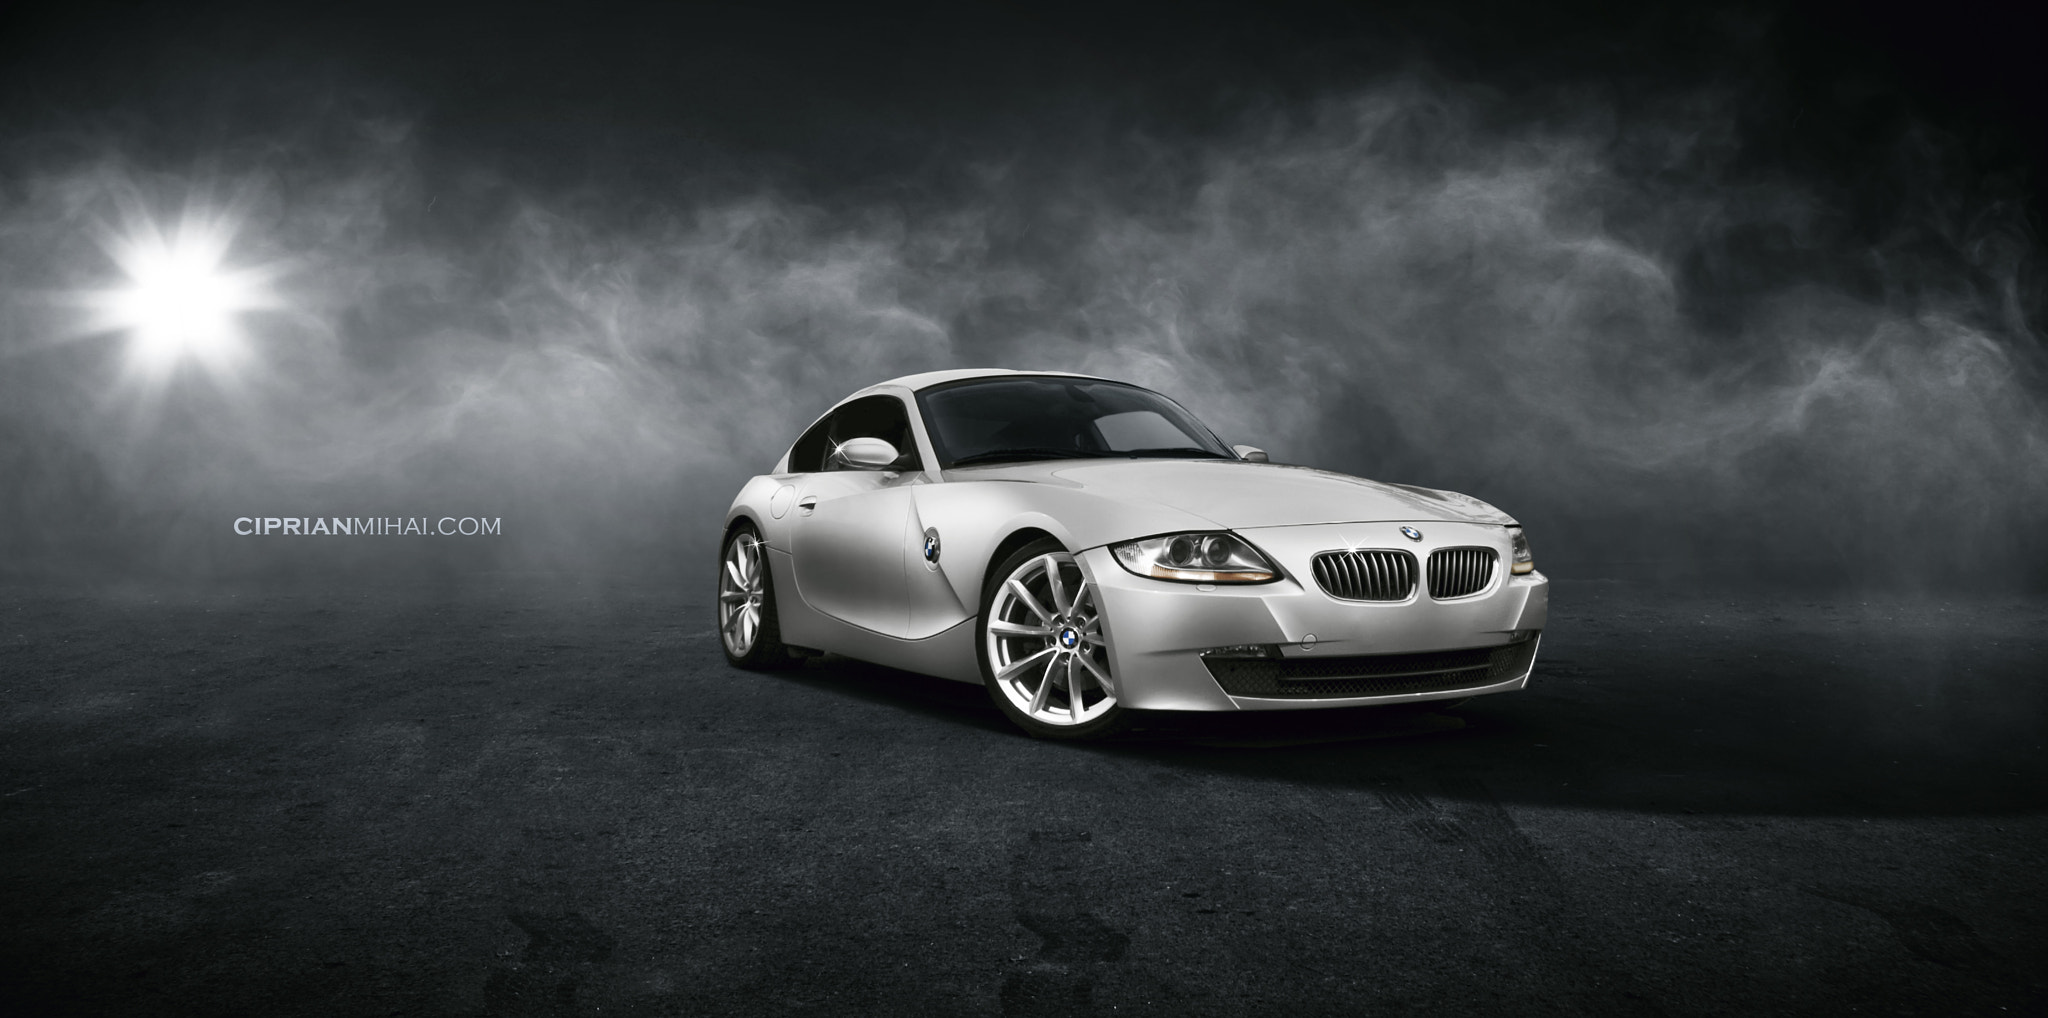 Photograph BMW Z4 Coupe by Ciprian Mihai on 500px